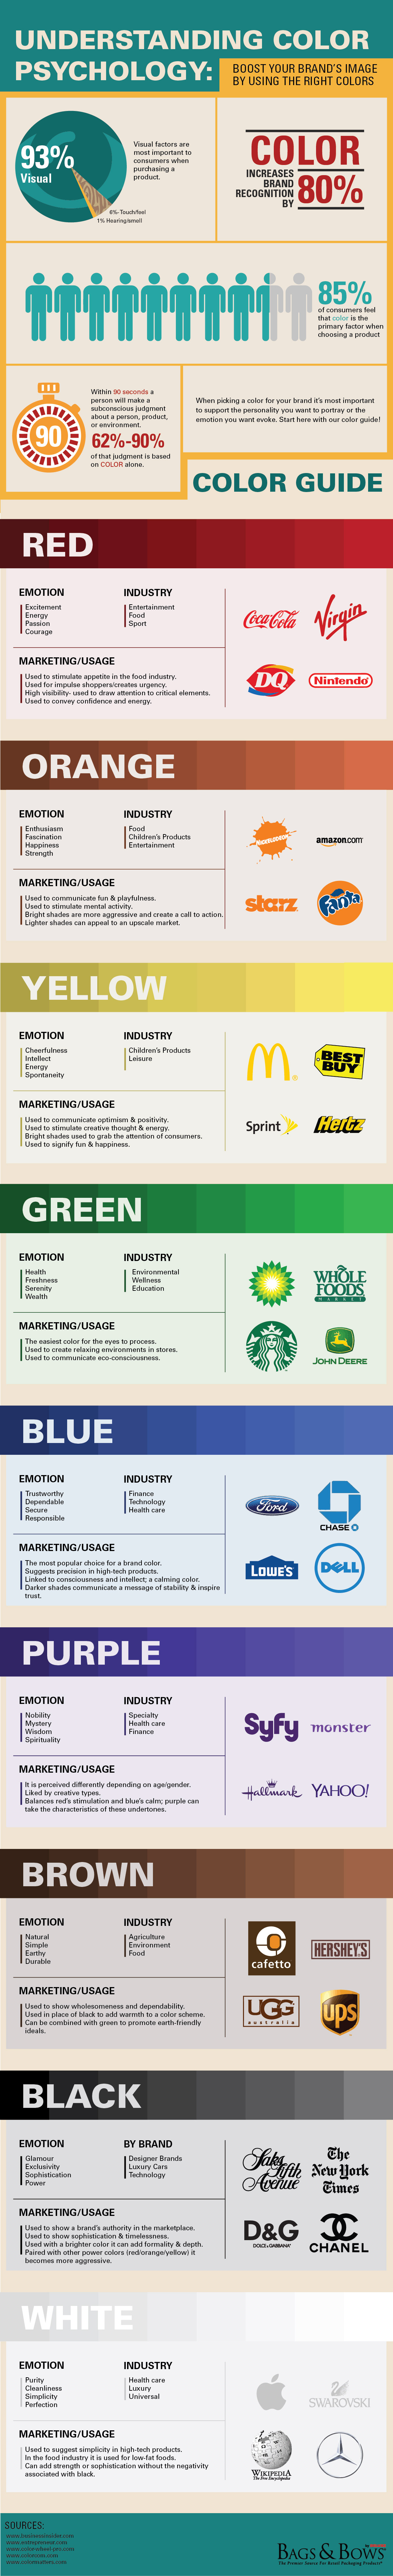 infographic psychology of color